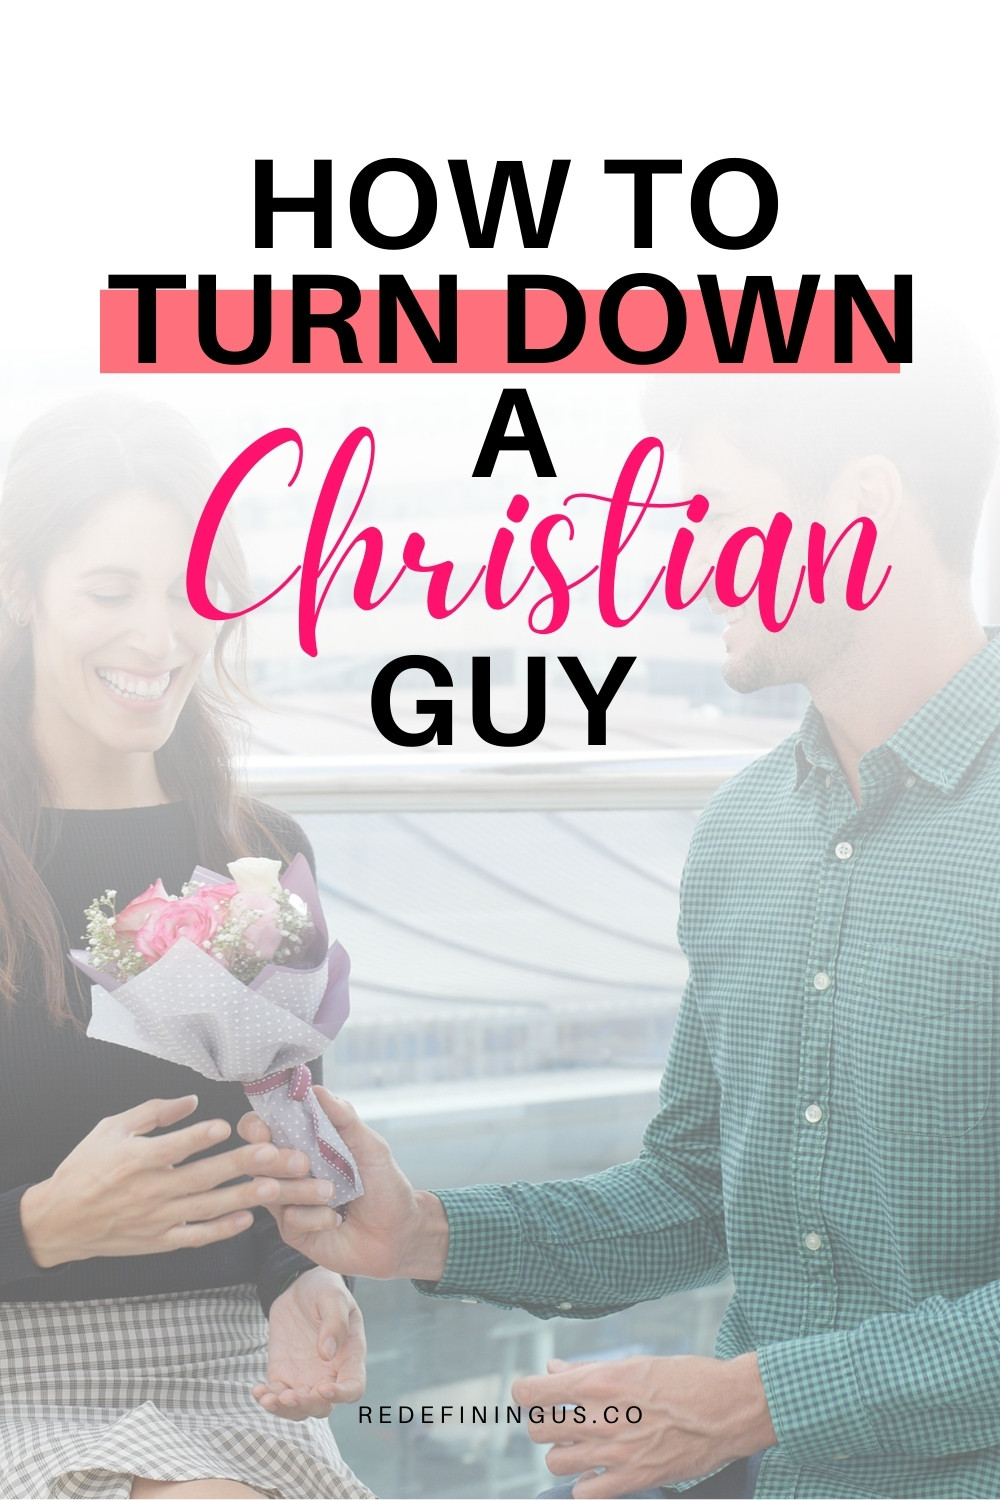 How to Turn Down a Christian Guy